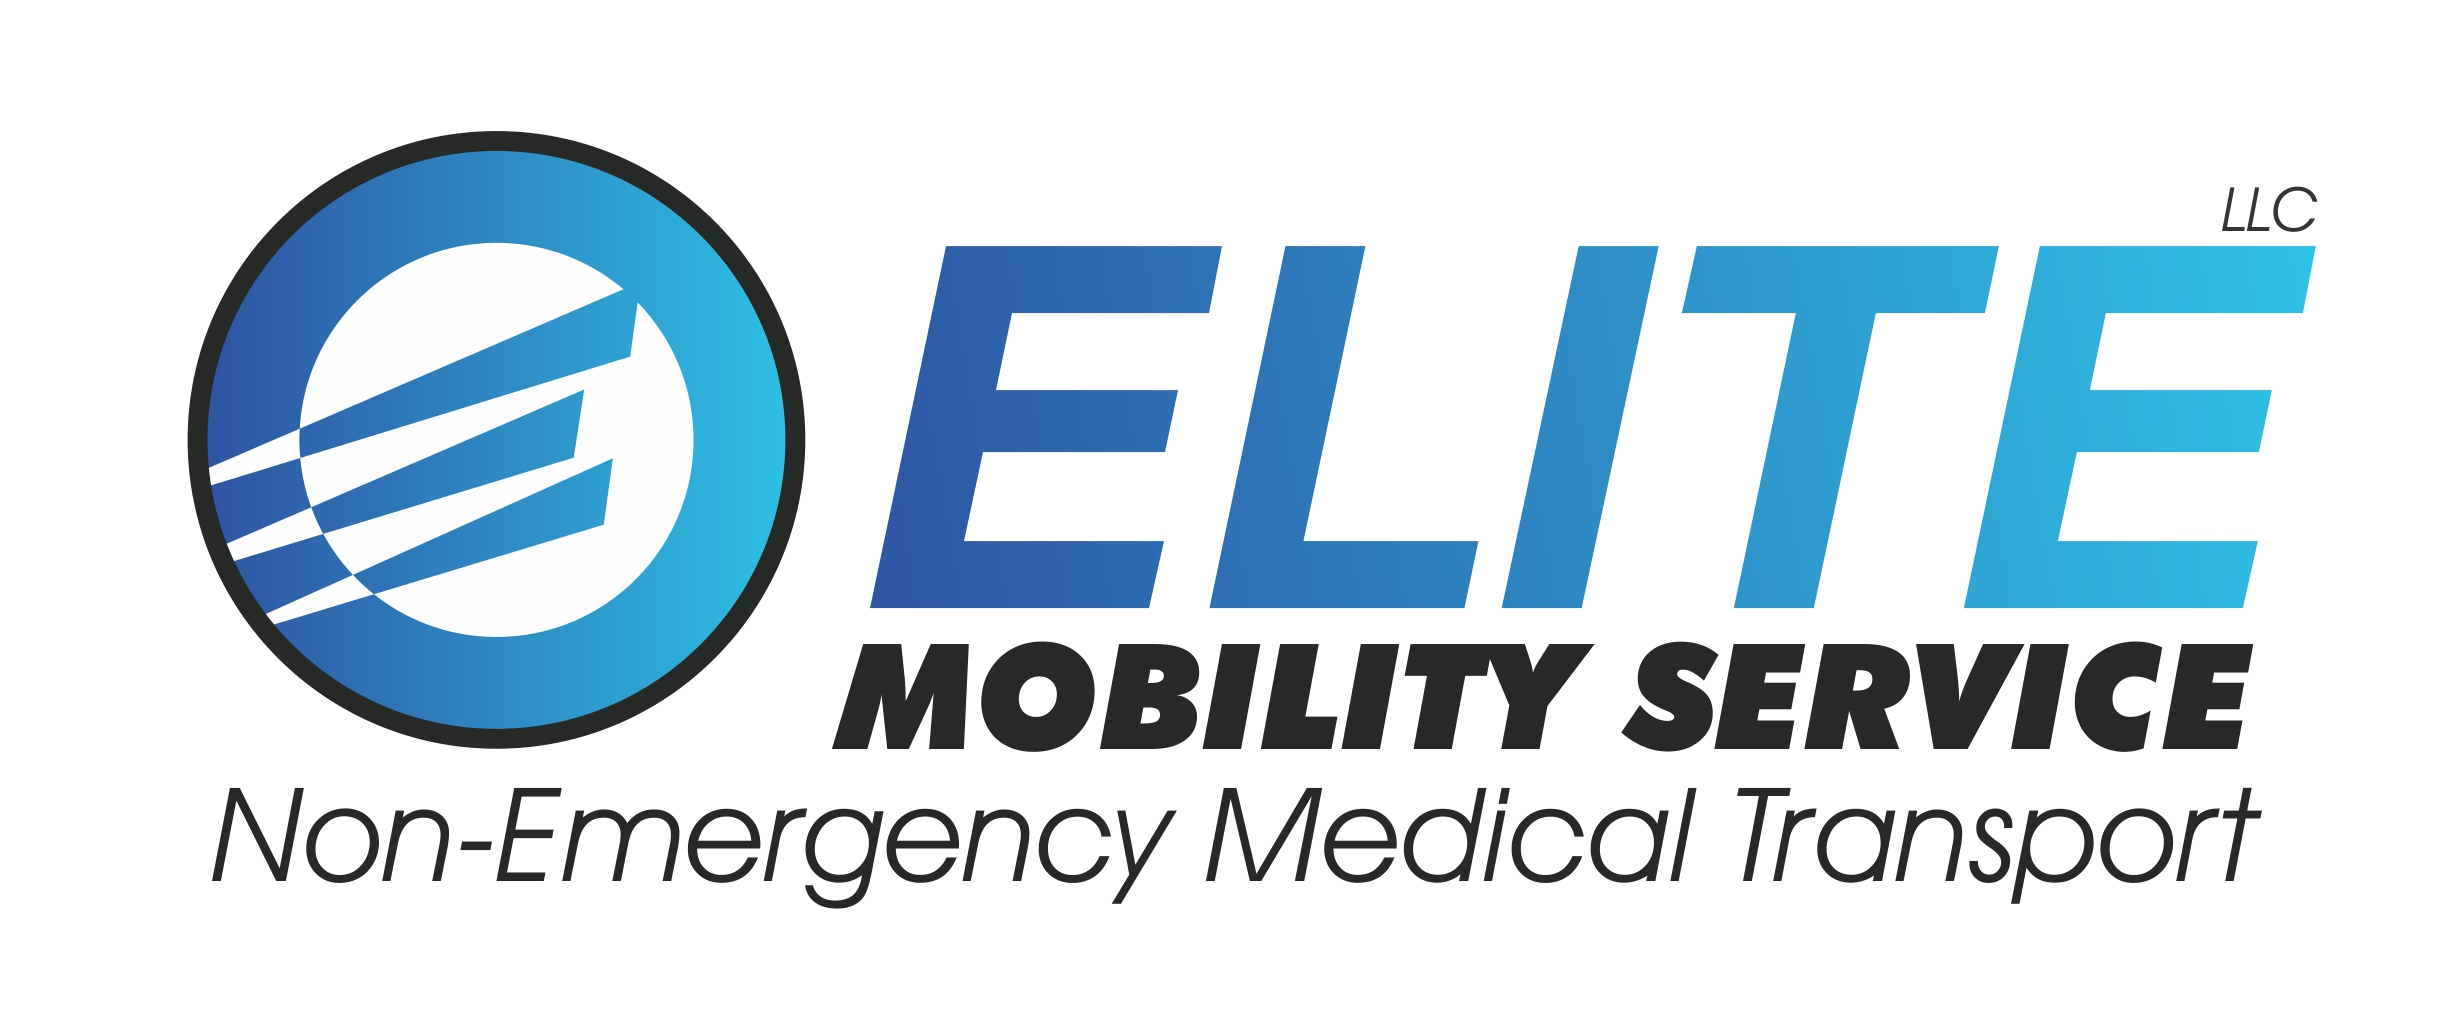 Elite Mobility Service LLC Celebrates Opening with Ribbon Cutting at the Palm Desert Chamber of Commerce